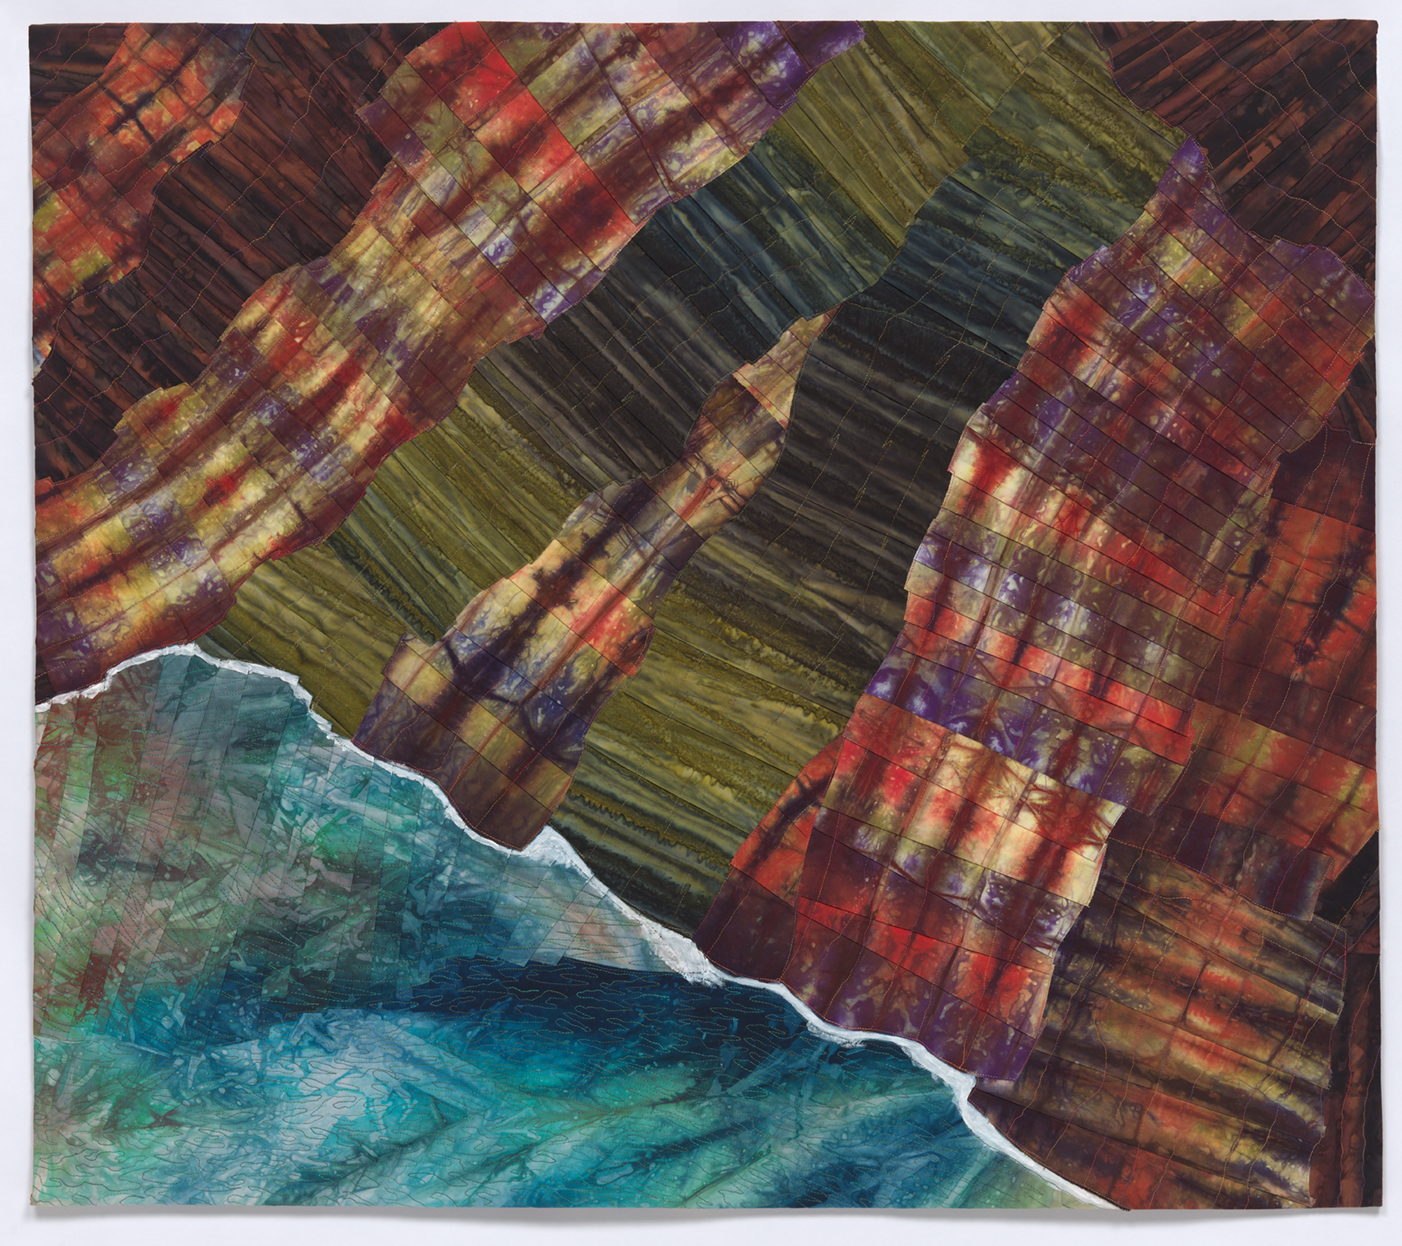 Inspired by an aerial view of the NaPali Coast, Kauai